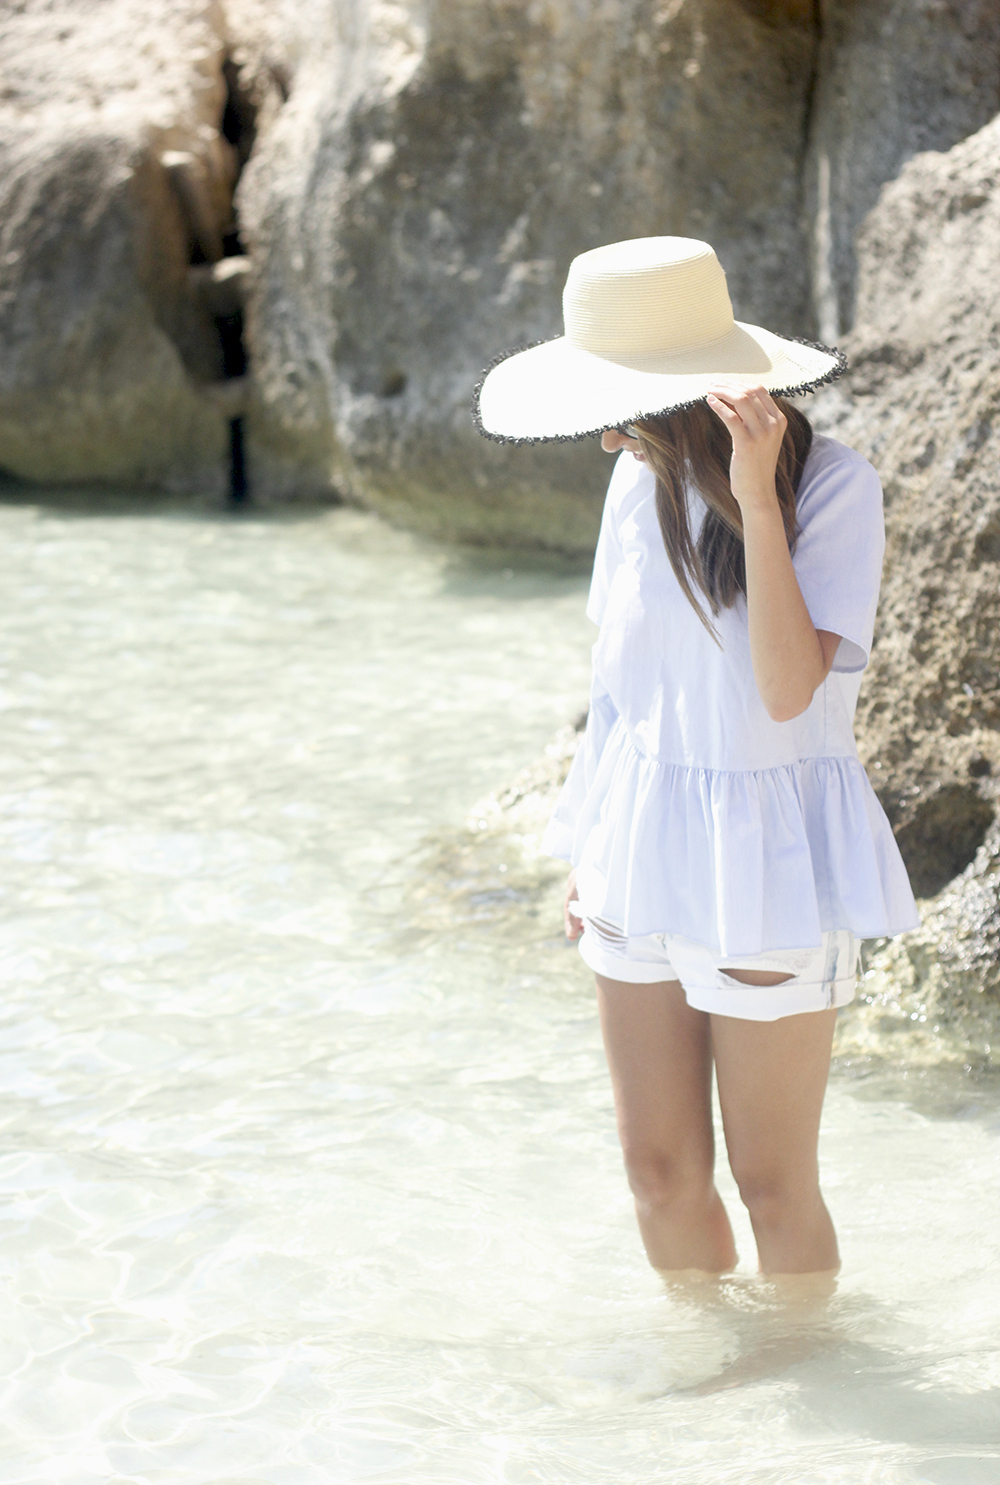 beach outfit blue blouse with bows shorts hat sunnies summer fashion style03